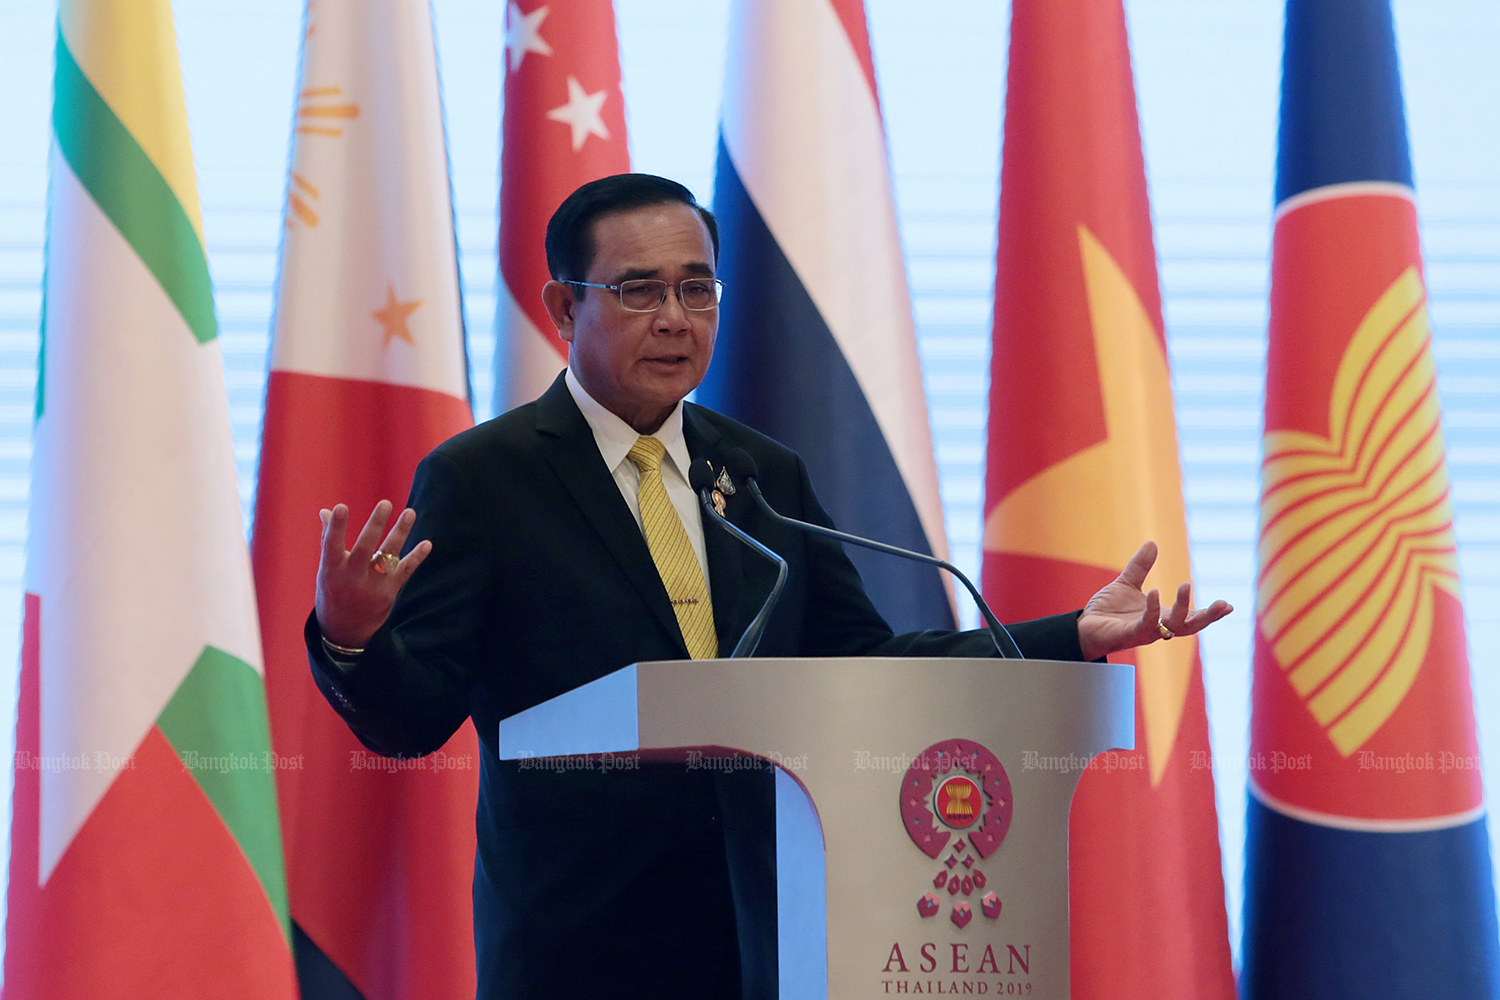 Prime Minister Prayut Chan-o-cha holds a press conference after the end of the Asean Summit at the Athenee Hotel on Sunday. (Photo by Chanat Katanyu)